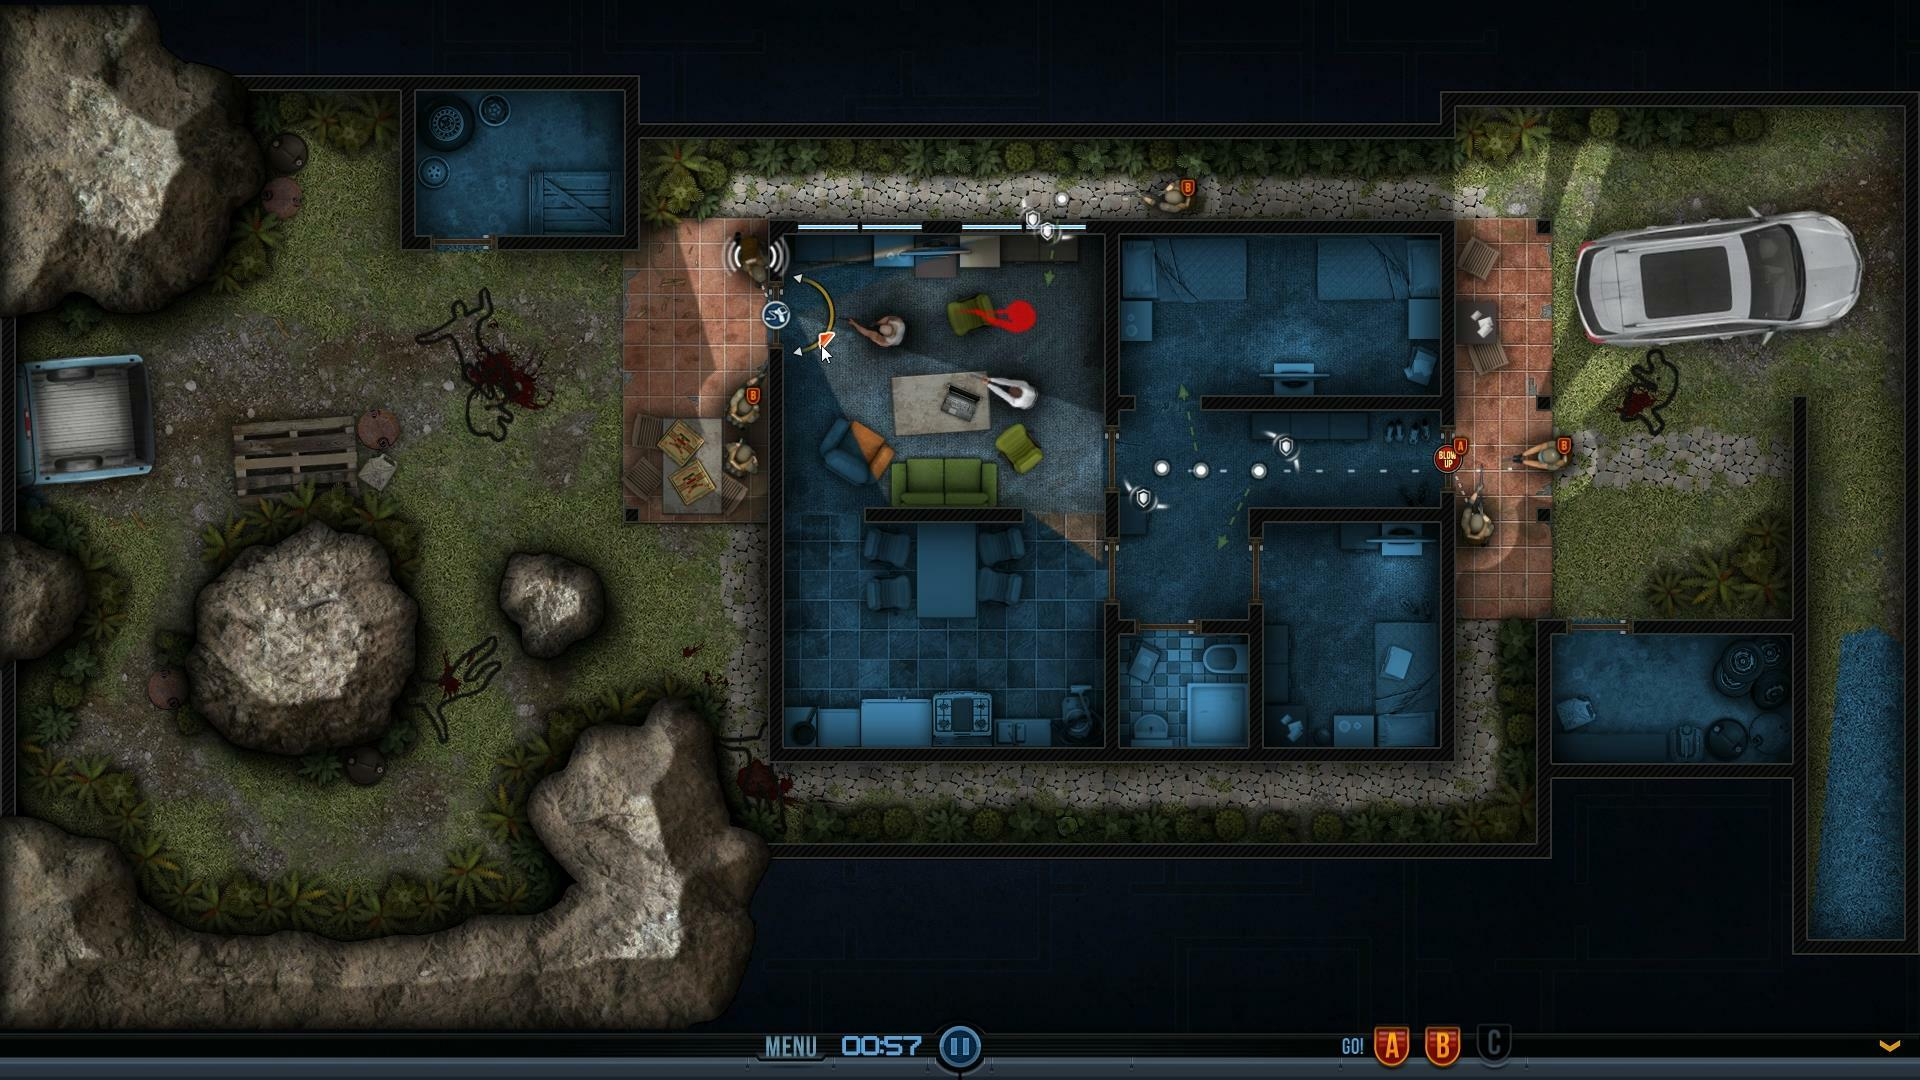 Door Kickers screenshot 3